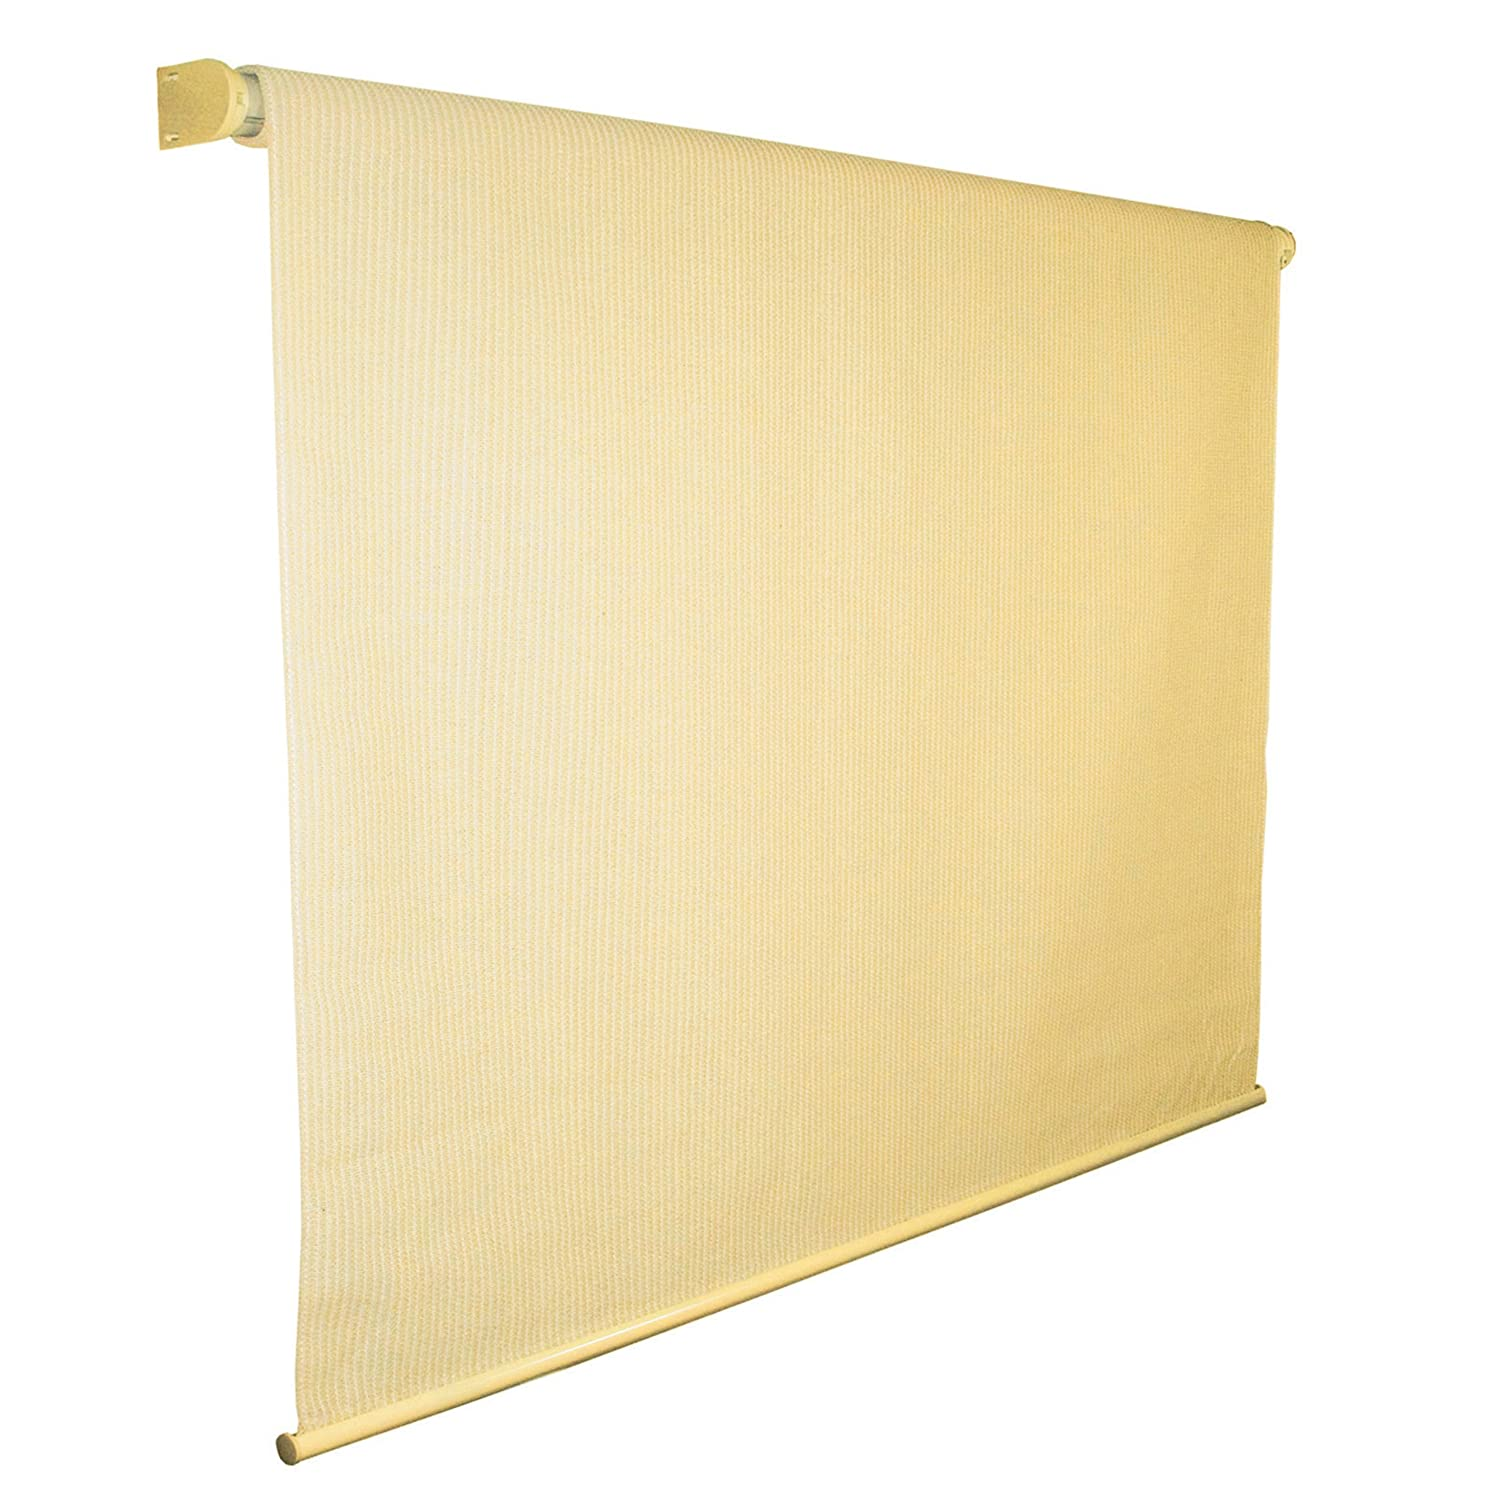 Coolaroo Exterior Roller Shade, 8 by 6-Foot, Almond